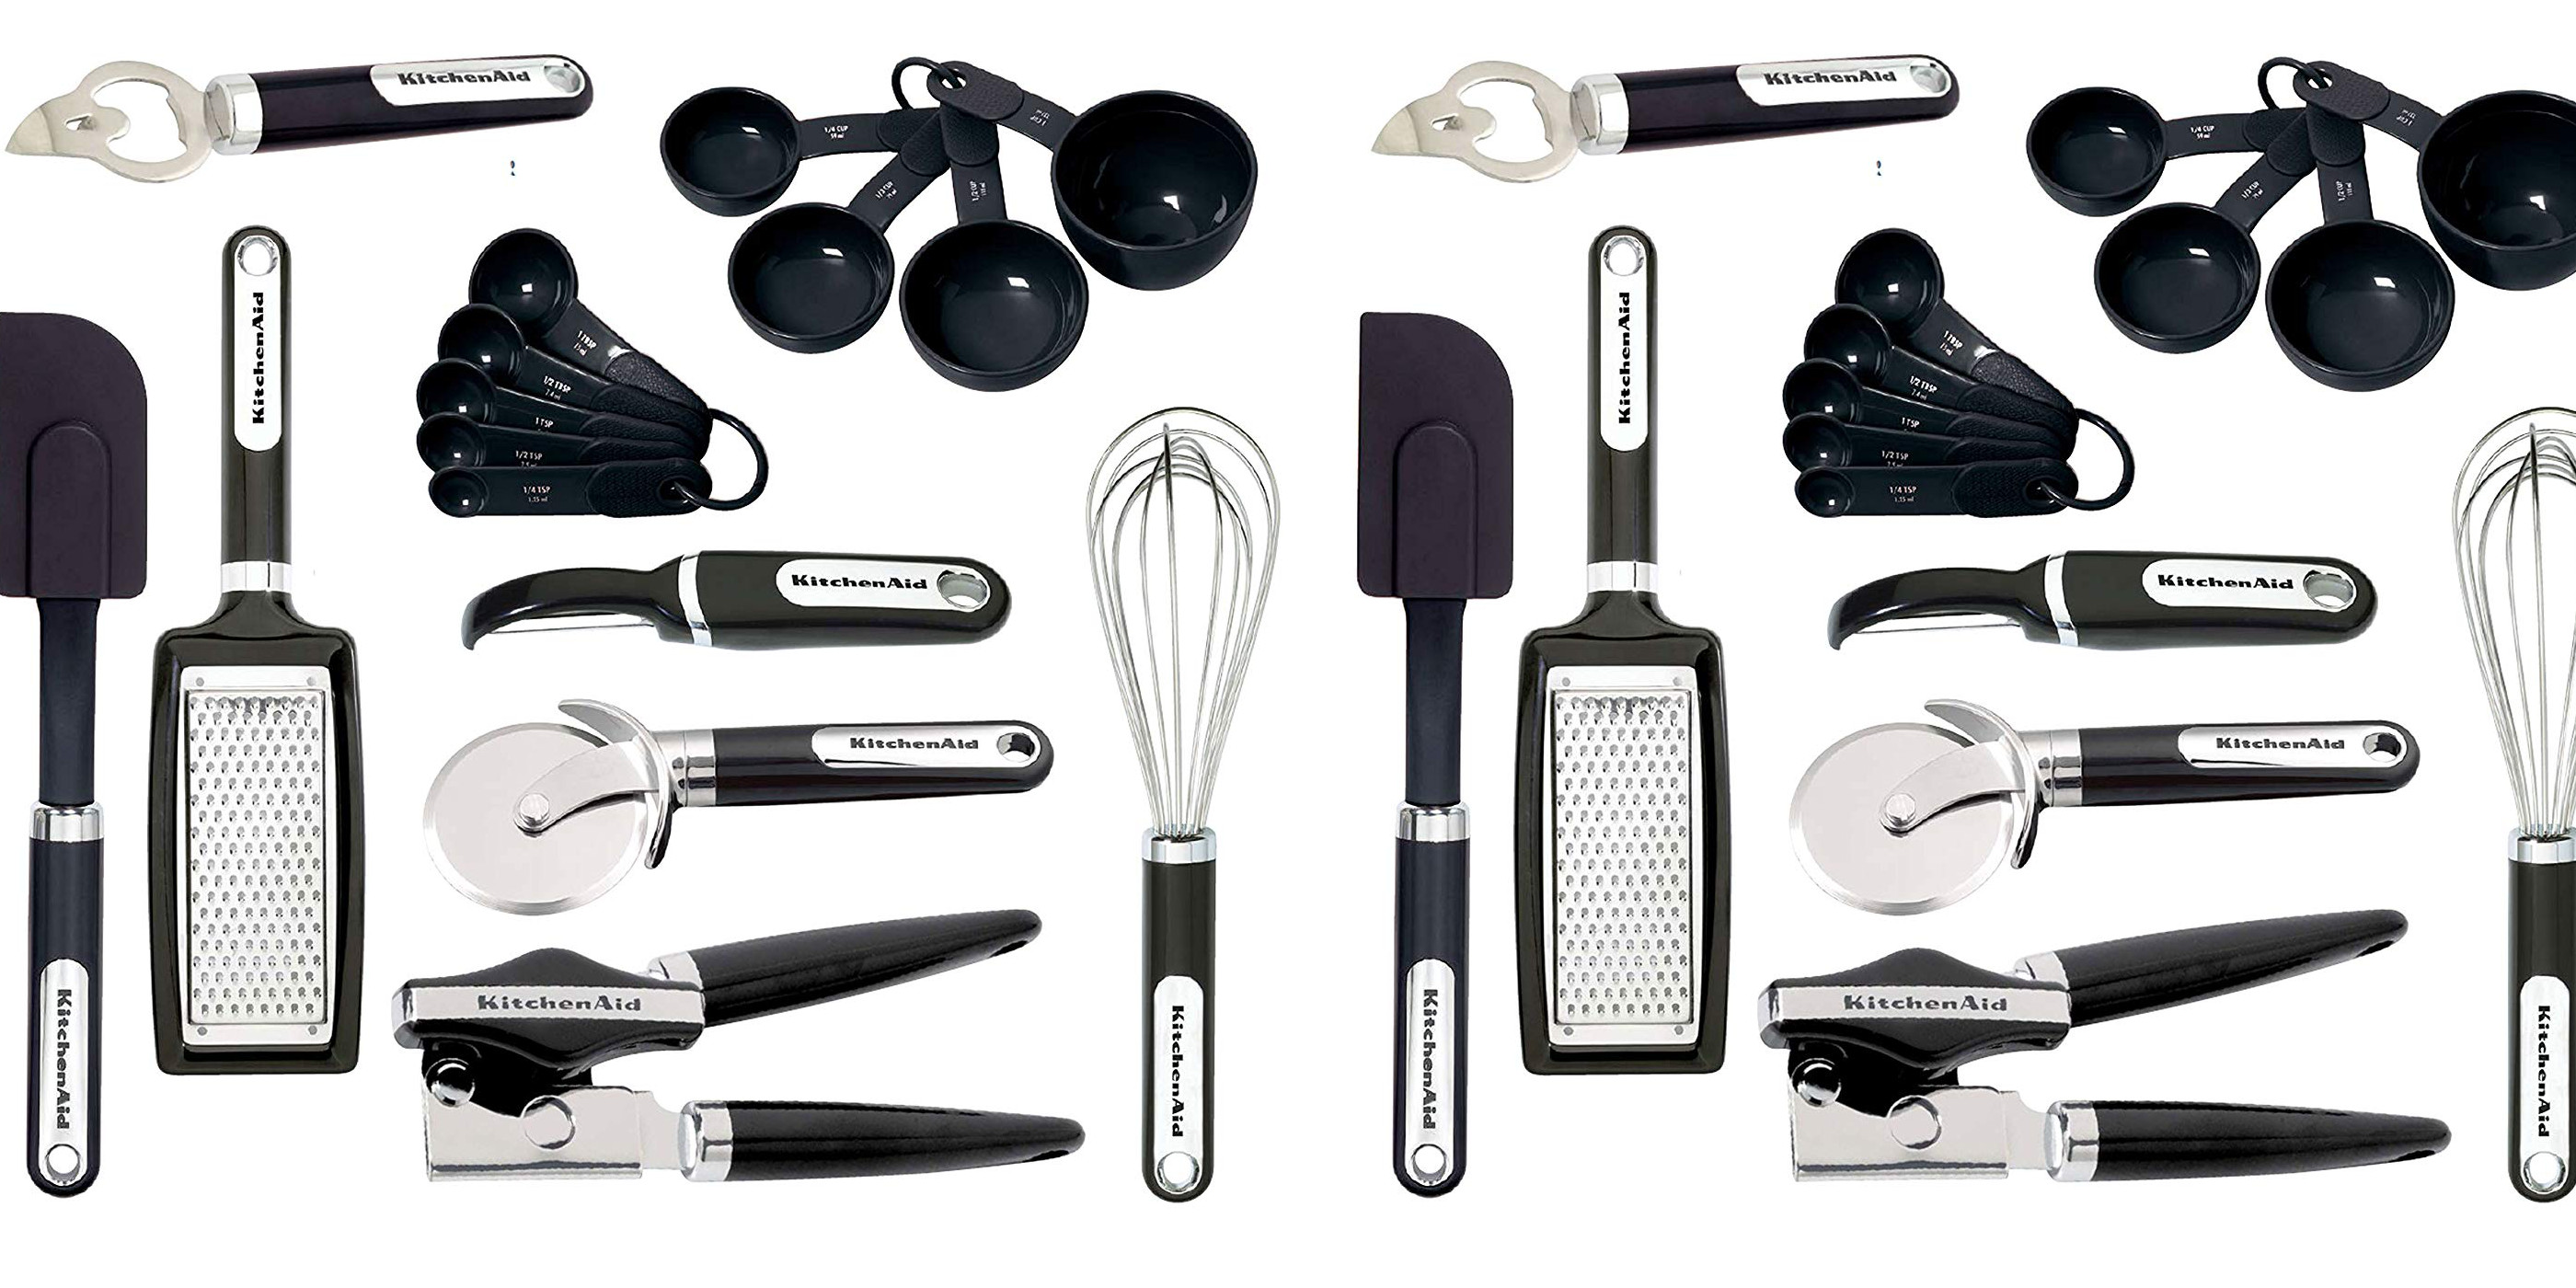 Refresh your kitchen utensils with KitchenAid's 16-Piece Set for $28 shipped (Reg. $35)